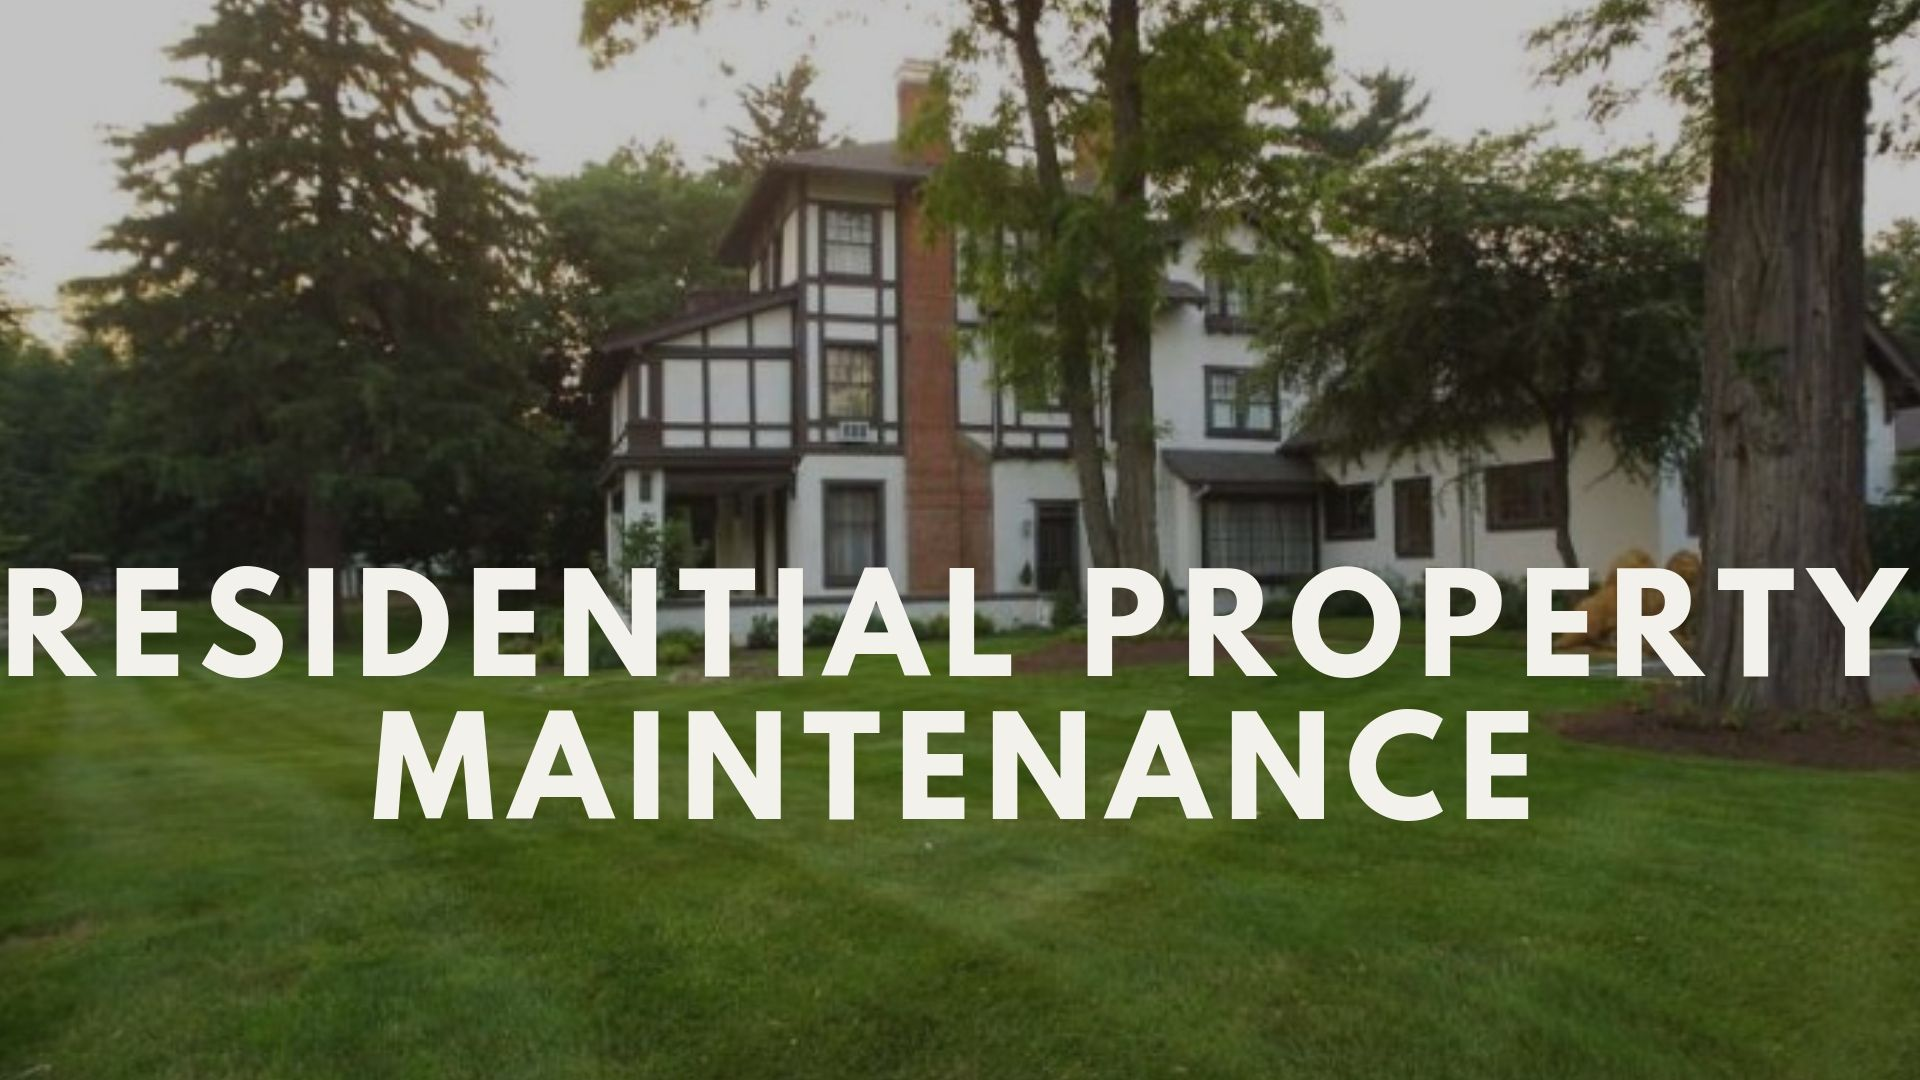 Residential Property Maintenance Service in Ottawa Lawn